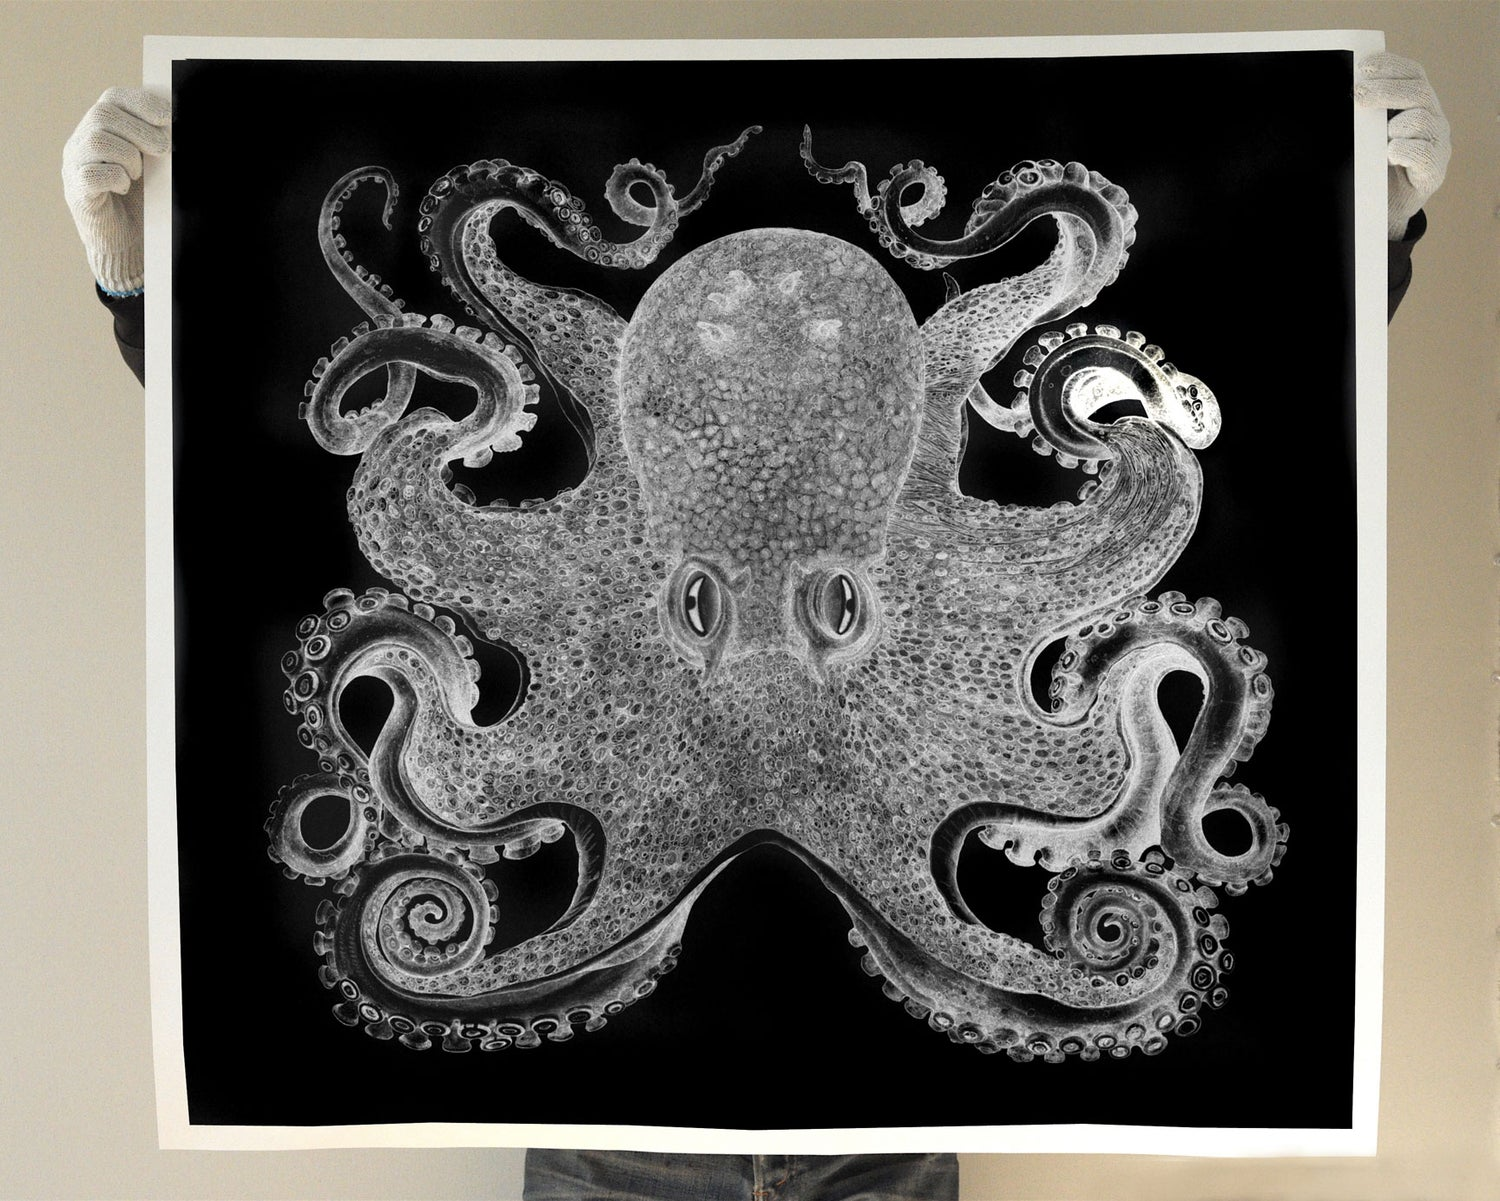 Image of 36 x 40 inch Octopus Limited Edition of 10.